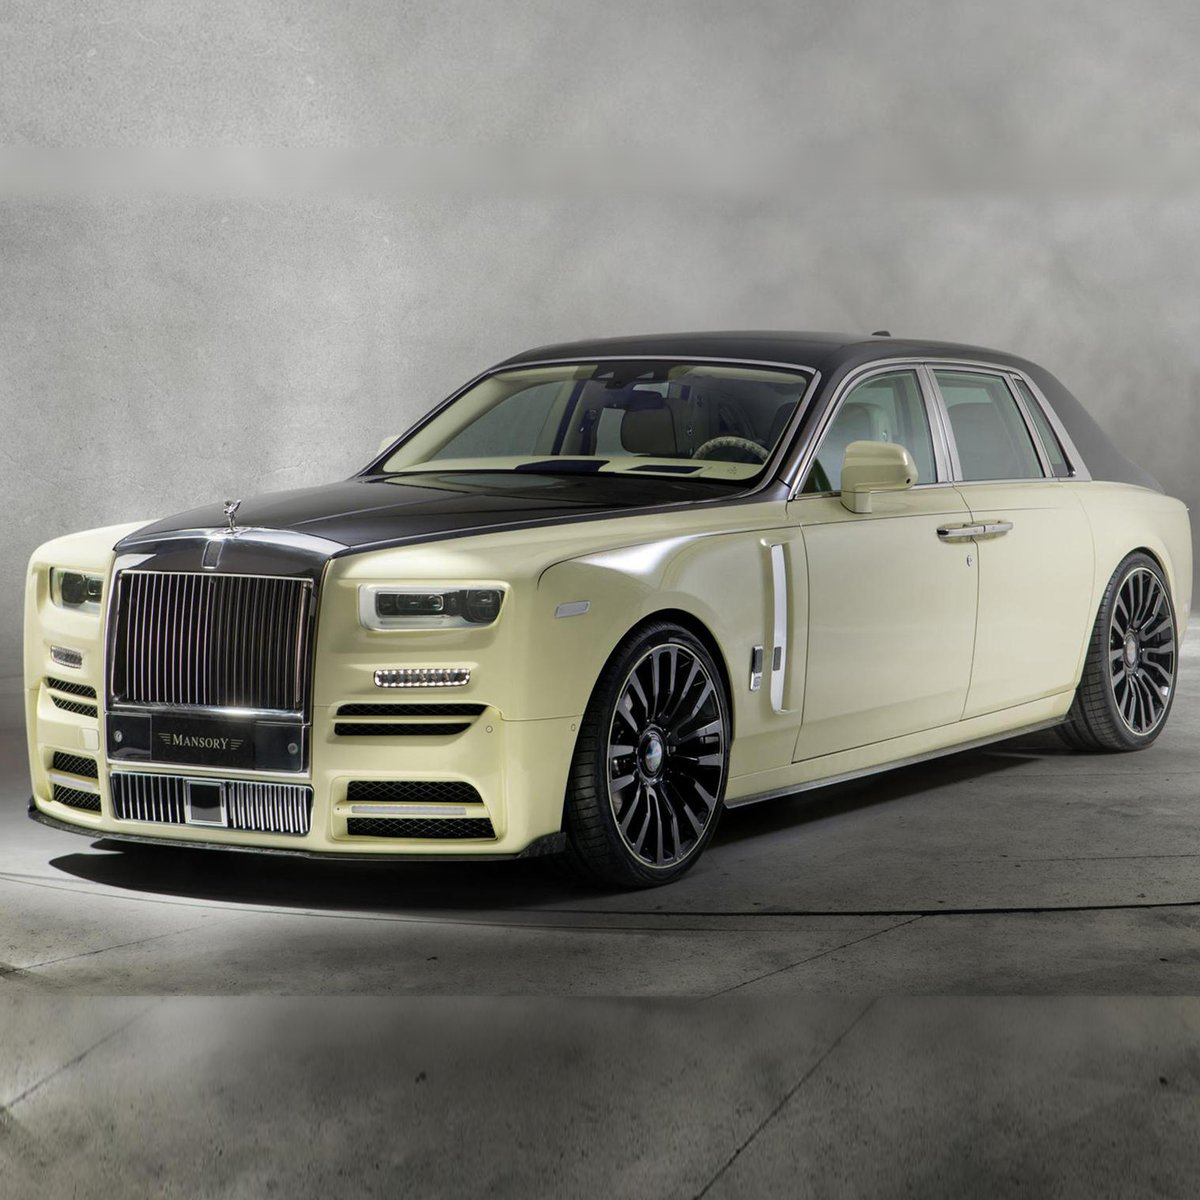 In addition to the endless variations of color, Rolls-Royce customers can infuse their paint with materials to create special effects